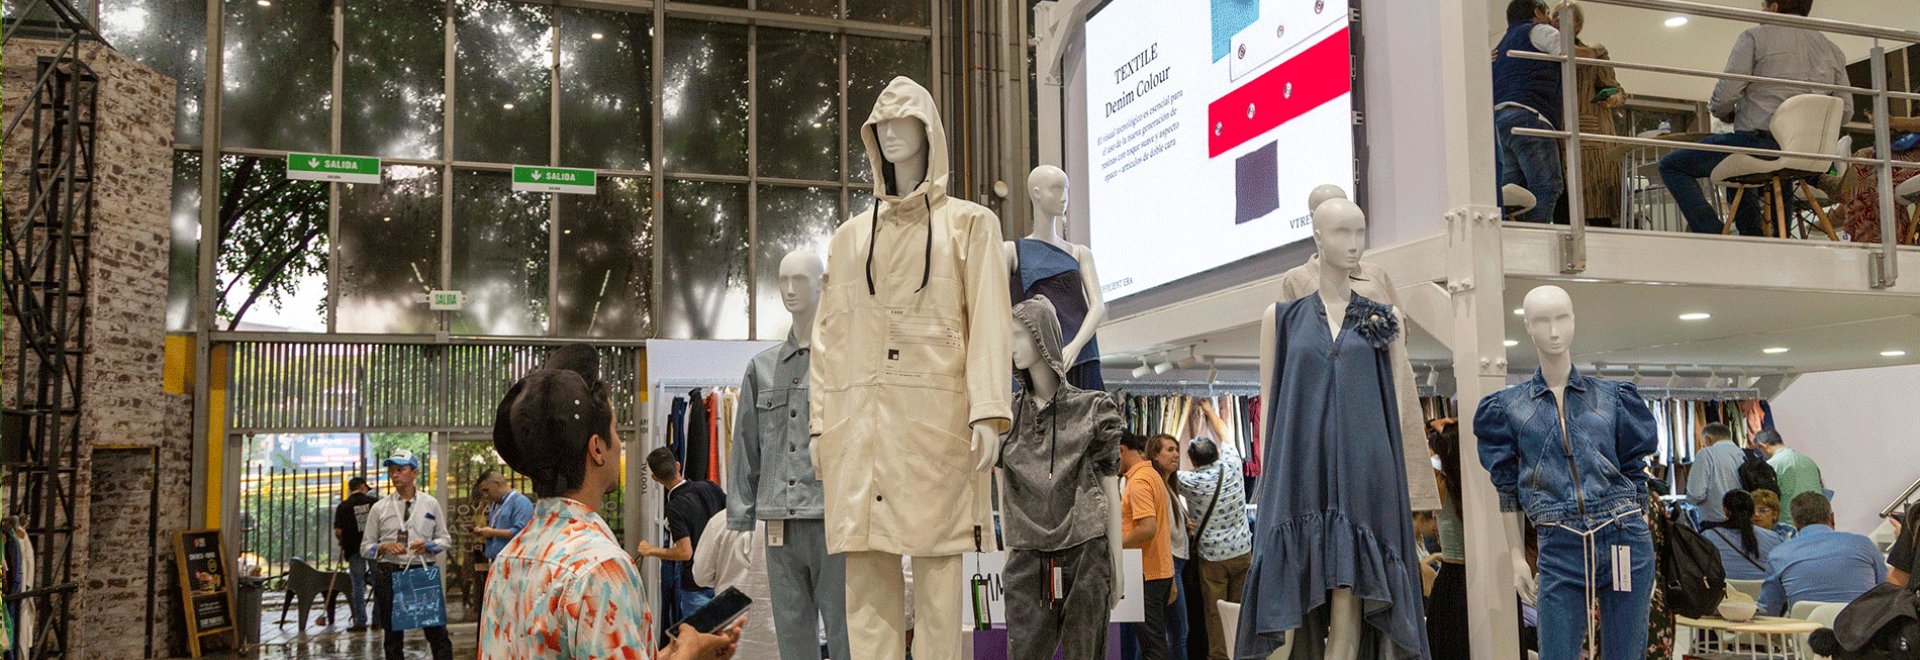 Colombiamoda and Colombiatex: United to reactivate The Fashion industry in Colombia.